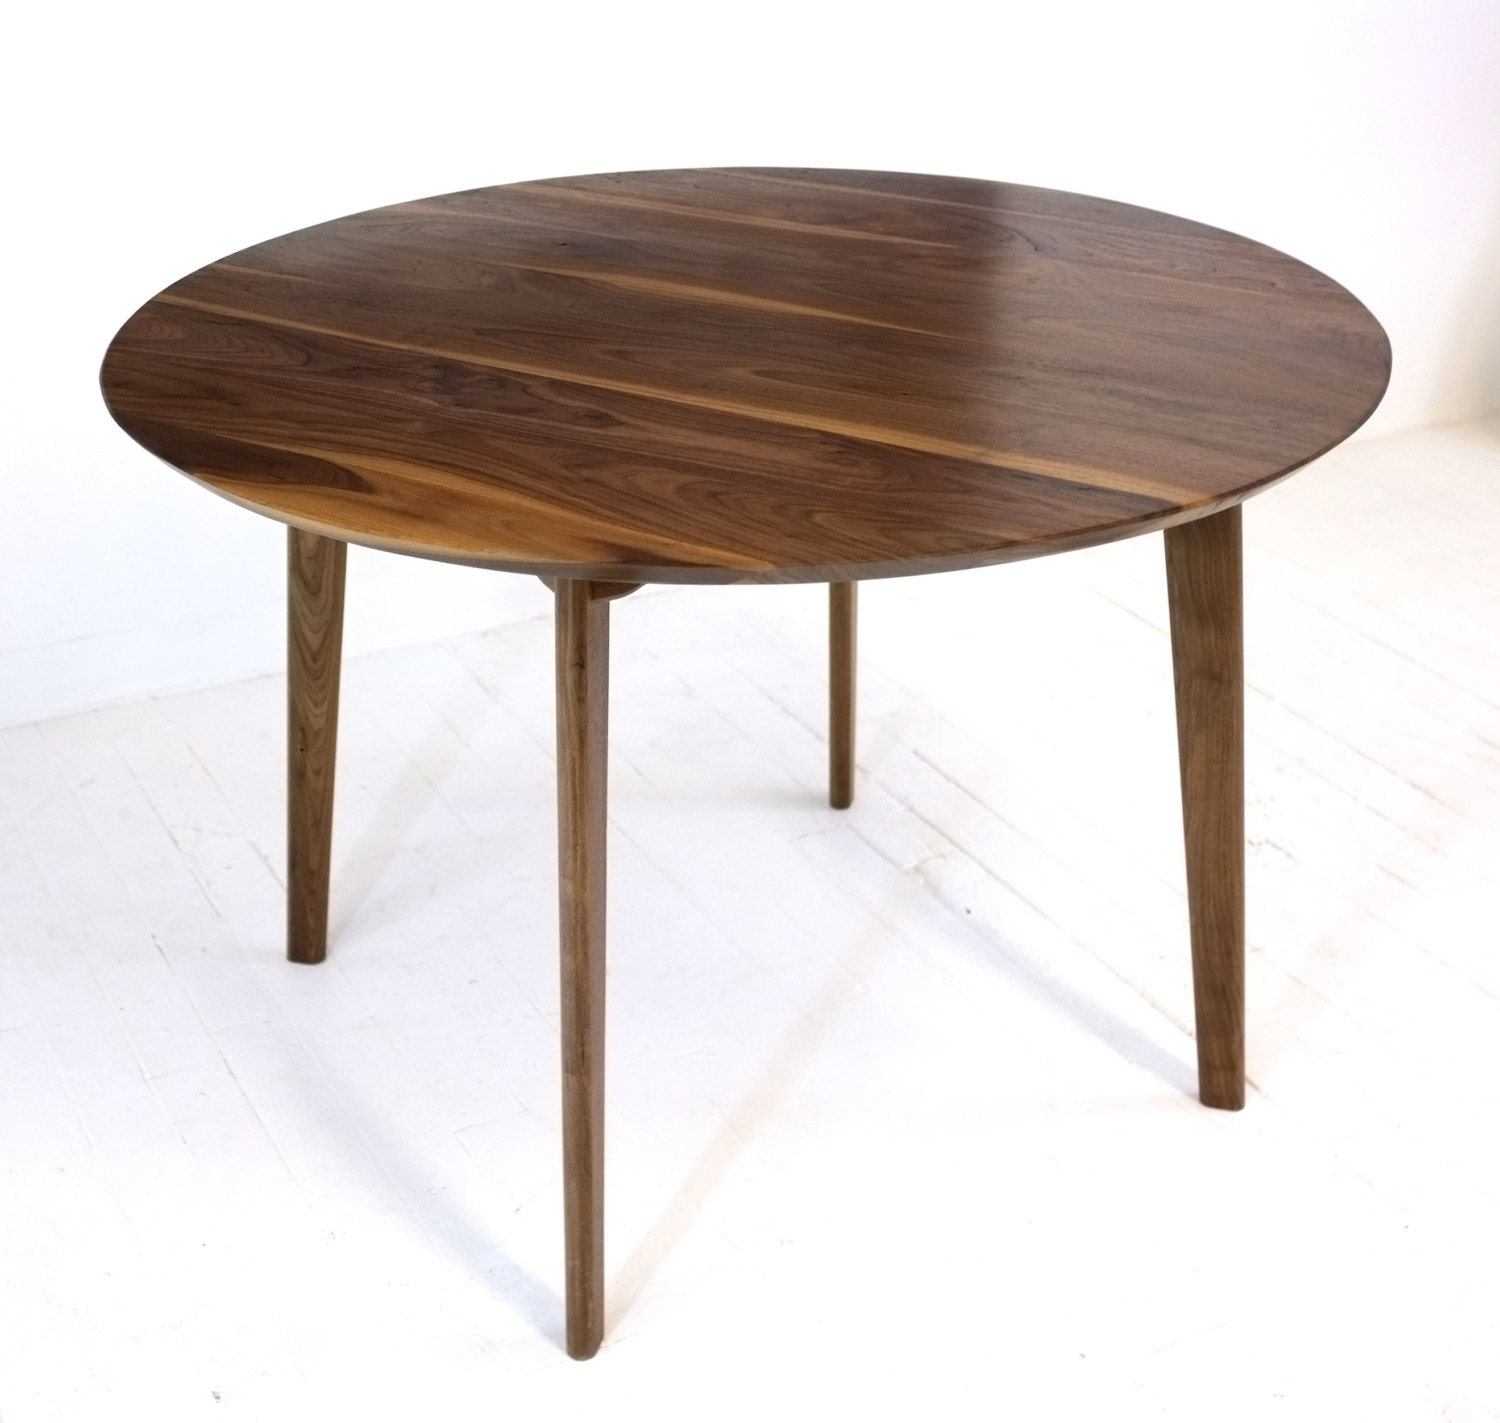 Round Dining Table Mid Century Modern Dining Table Solid